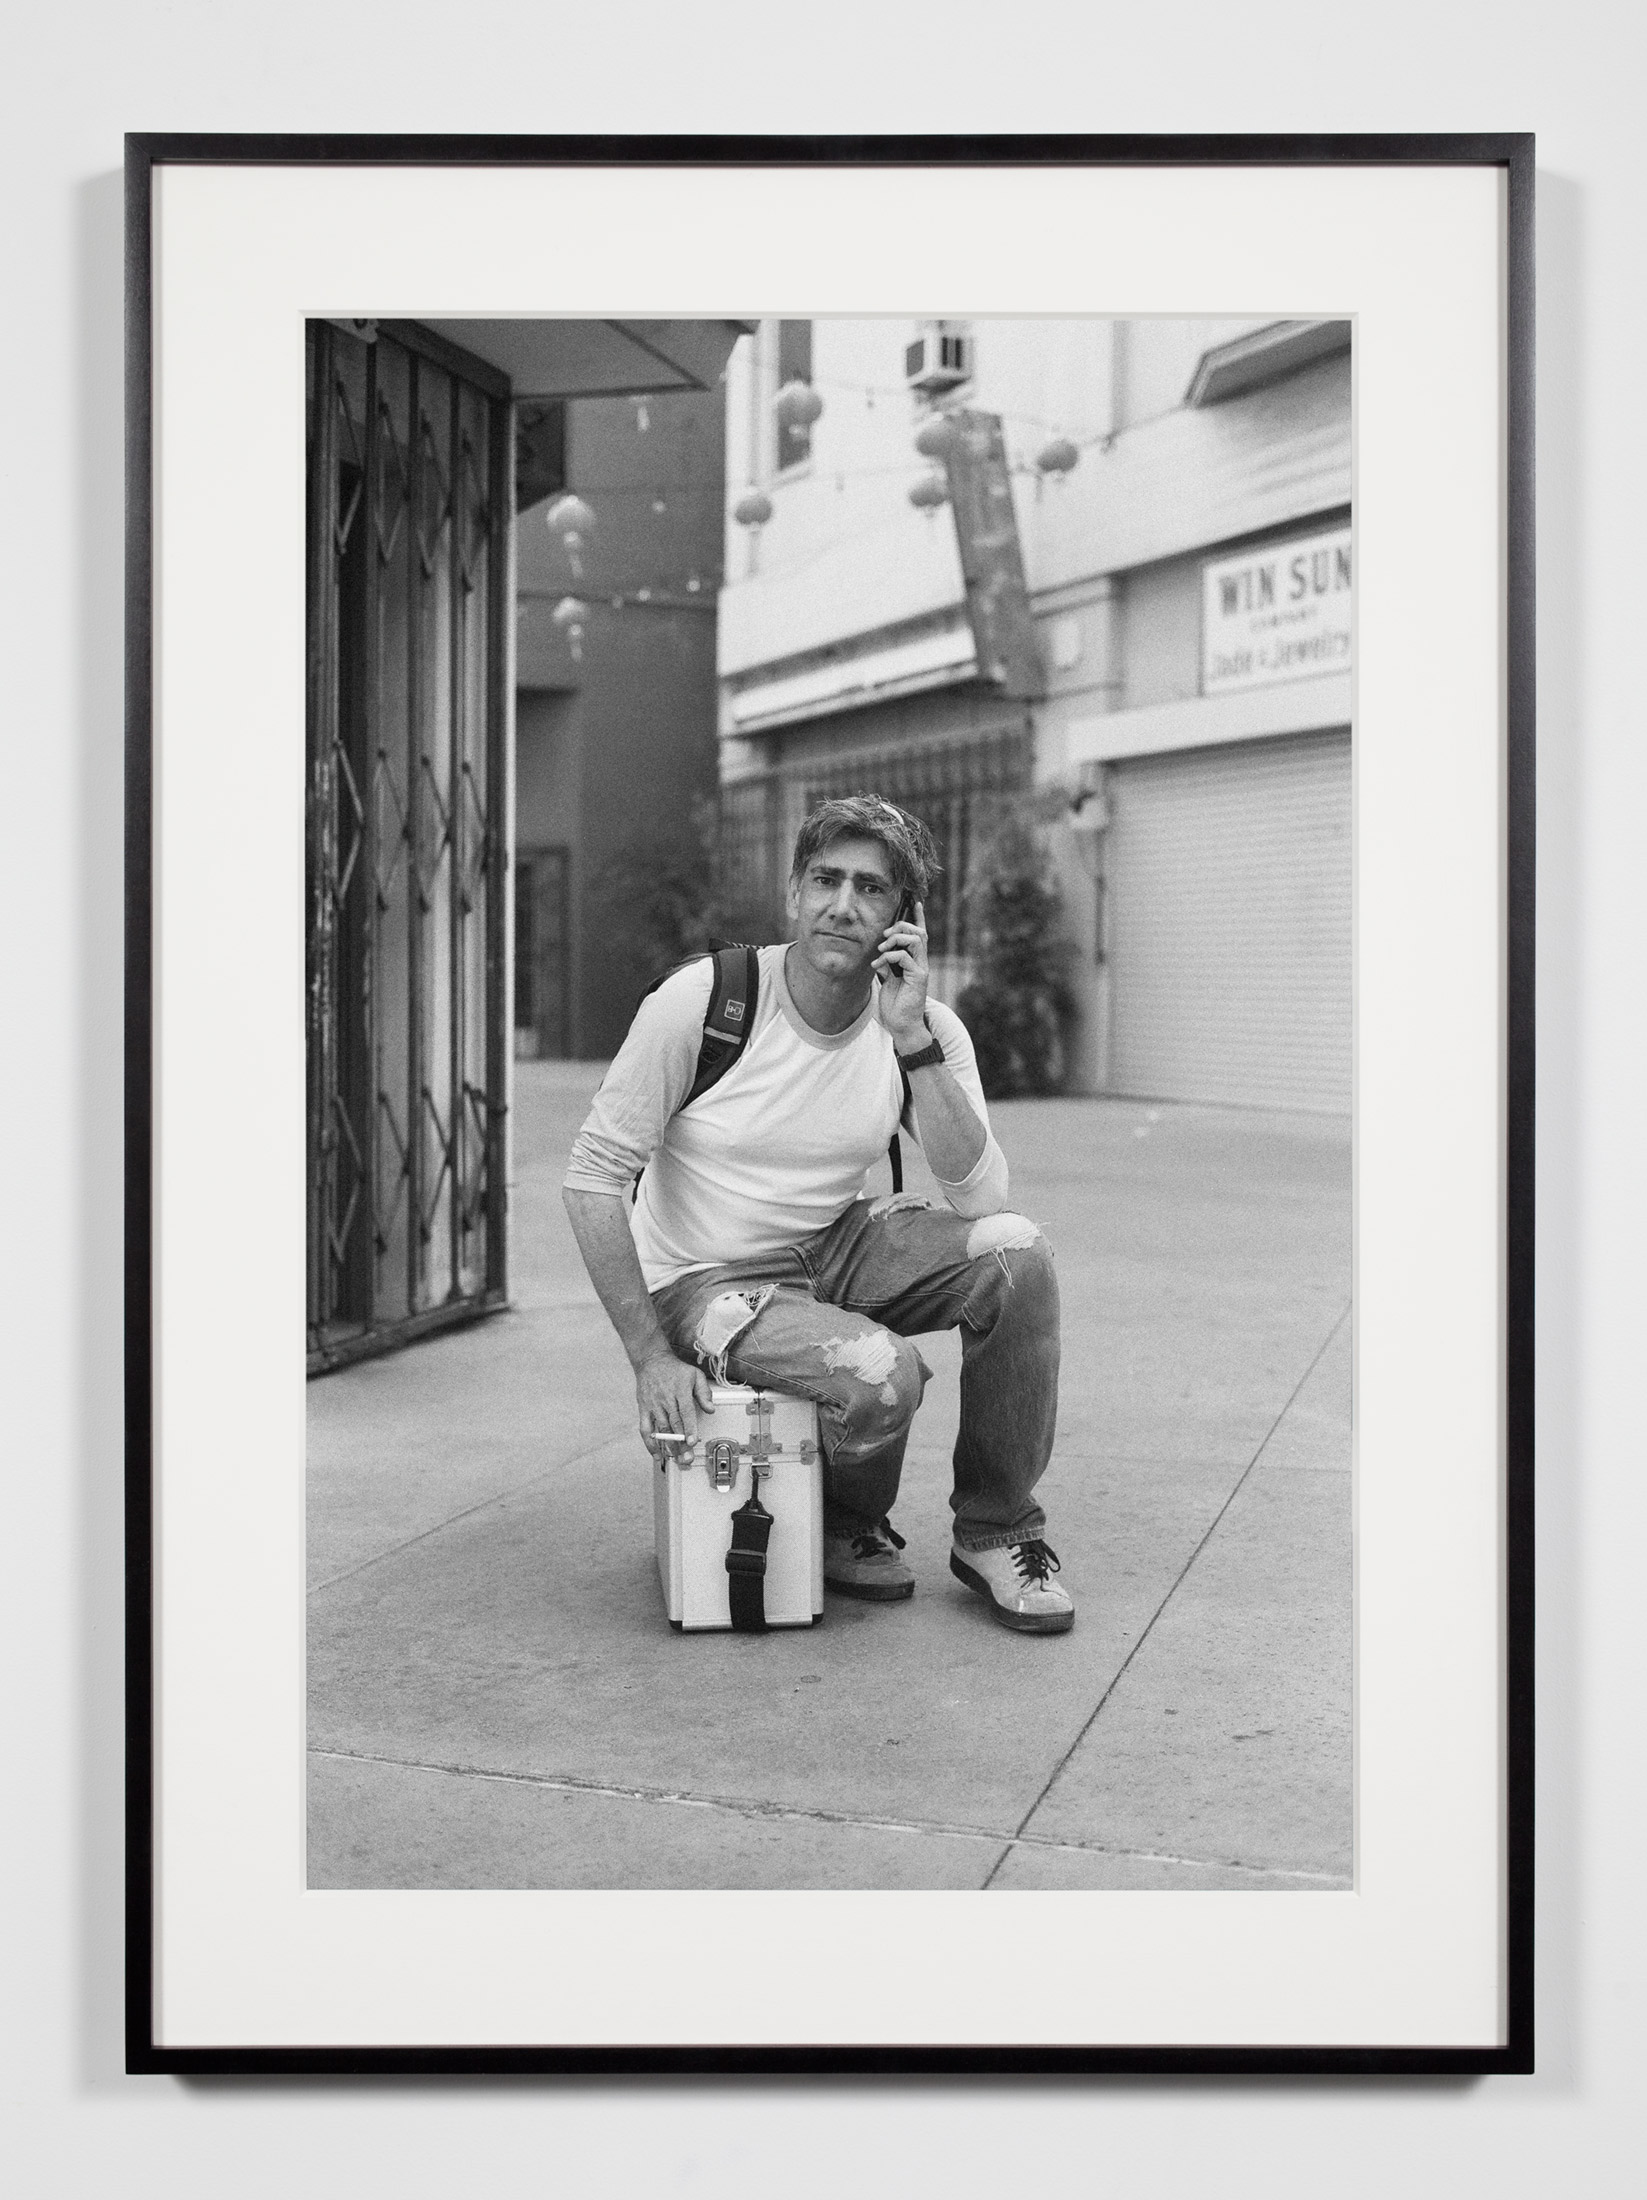 Gallery Preparator, Los Angeles, California, July 26, 2008    2011   Epson Ultrachrome K3 archival ink jet print on Hahnemühle Photo Rag paper  36 3/8 x 26 3/8 inches   Industrial Portraits, 2008–